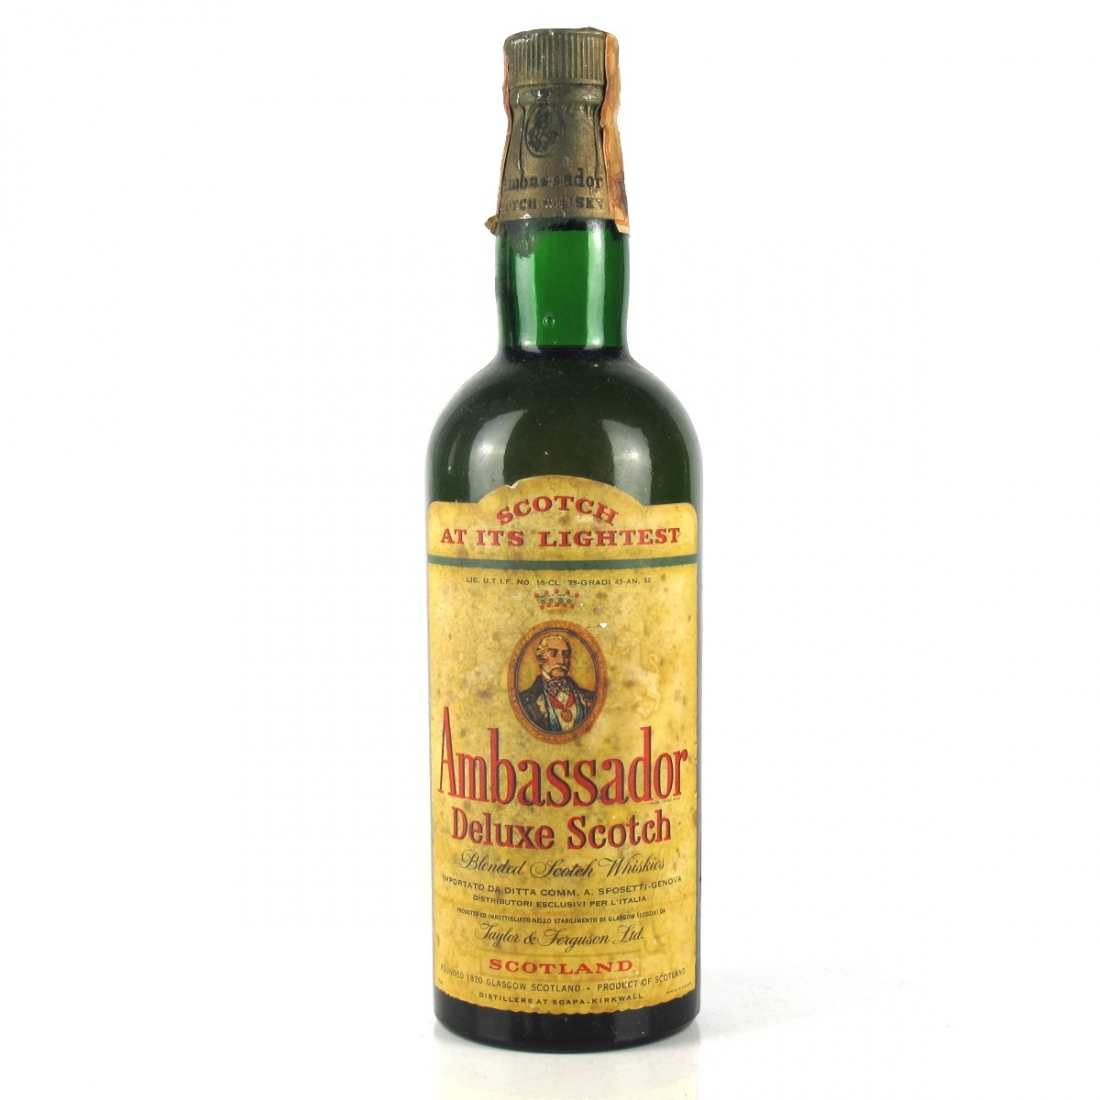 Ambassador Deluxe Scotch Whisky 1960s